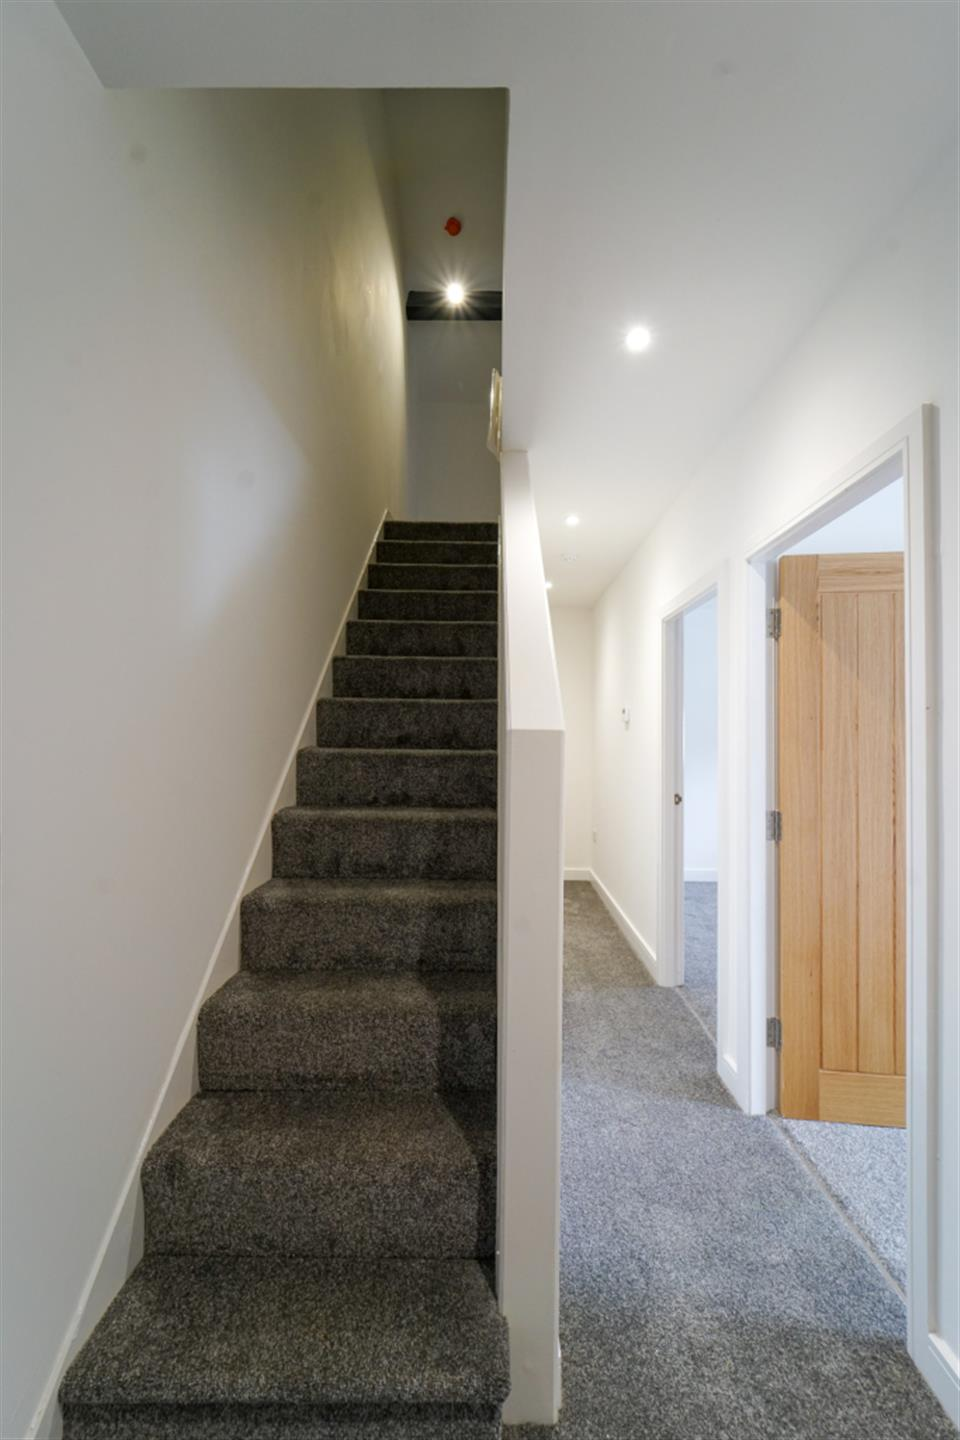 2 bedroom apartment flat / apartment To Let in 96 Watery Lane, Whitehall, Darwen, Lancs - Staira and Hallway